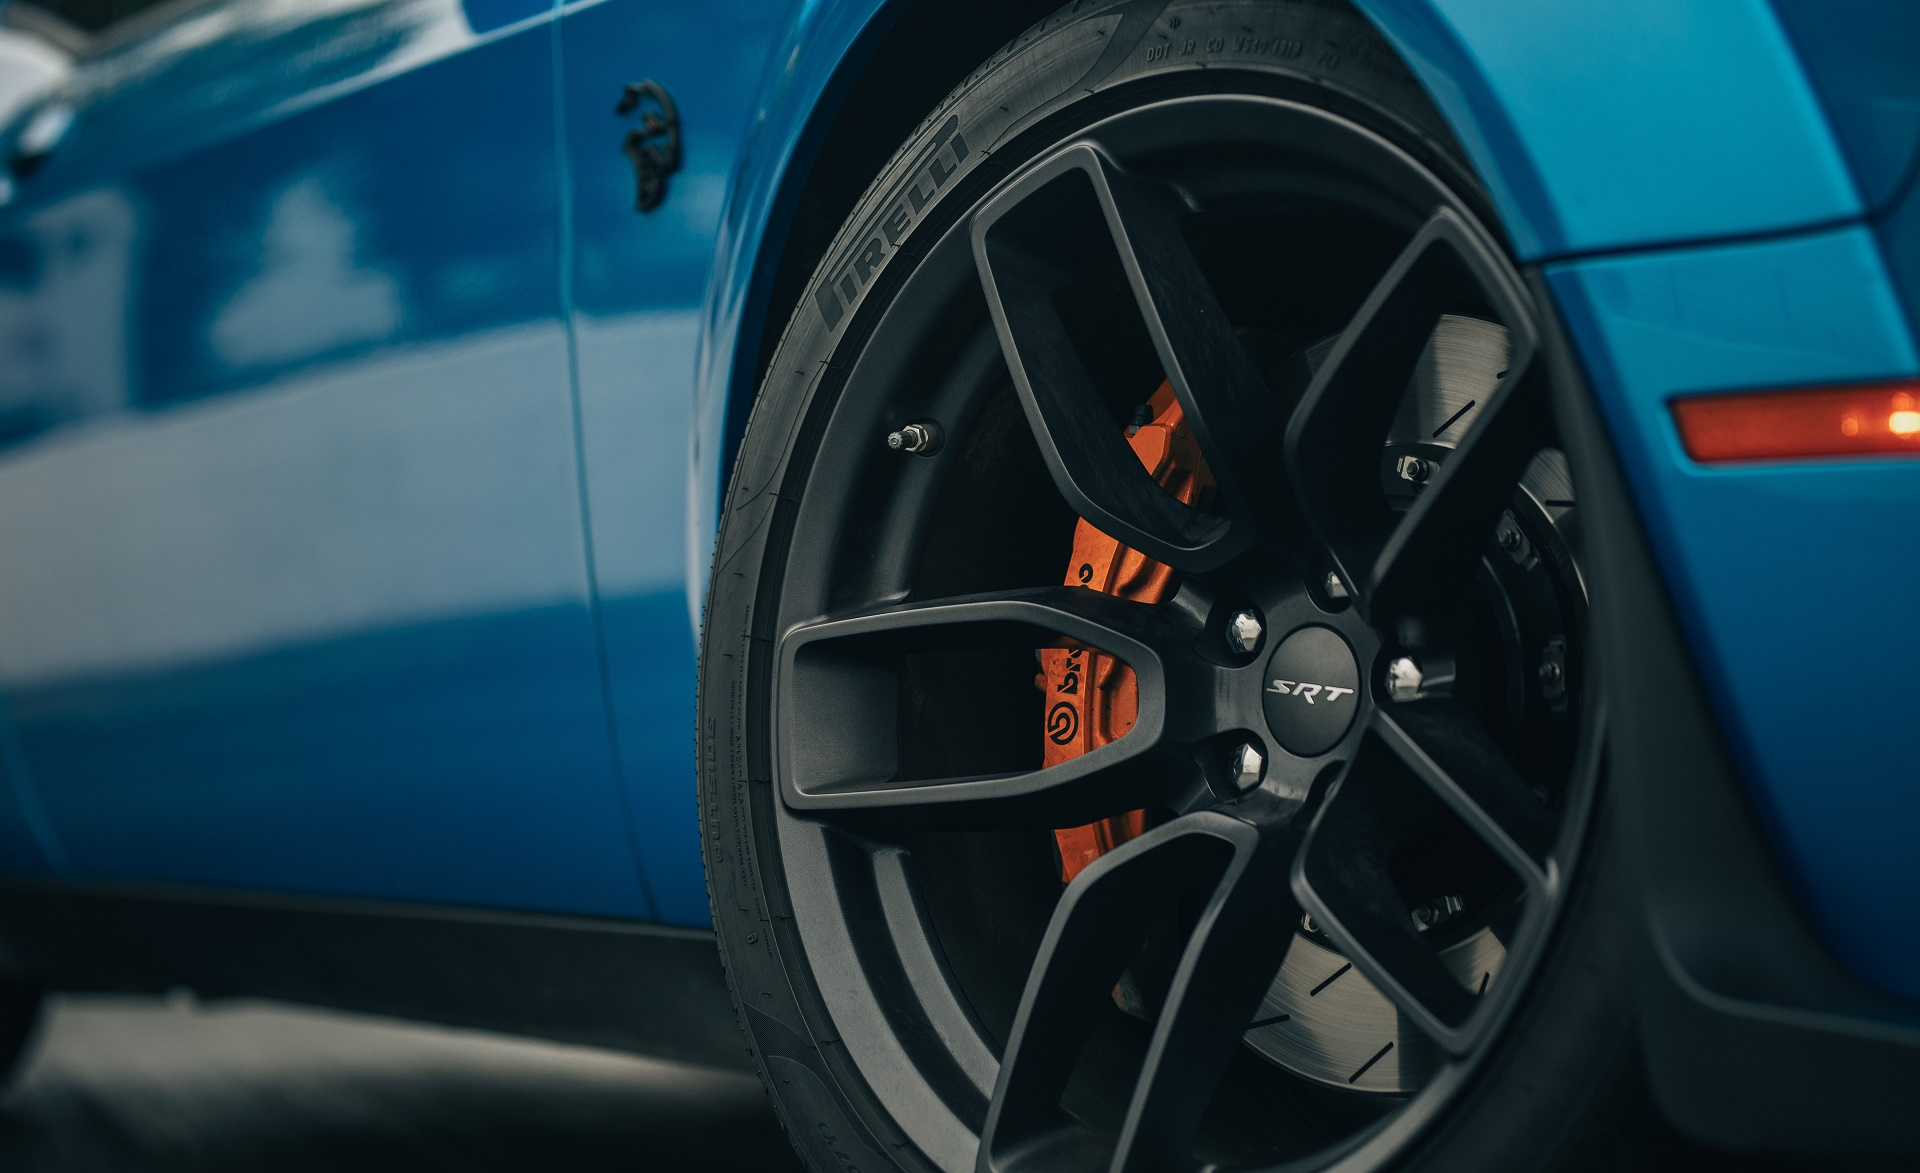 2019 Dodge Challenger SRT Hellcat Redeye Wheel Wallpaper (14)